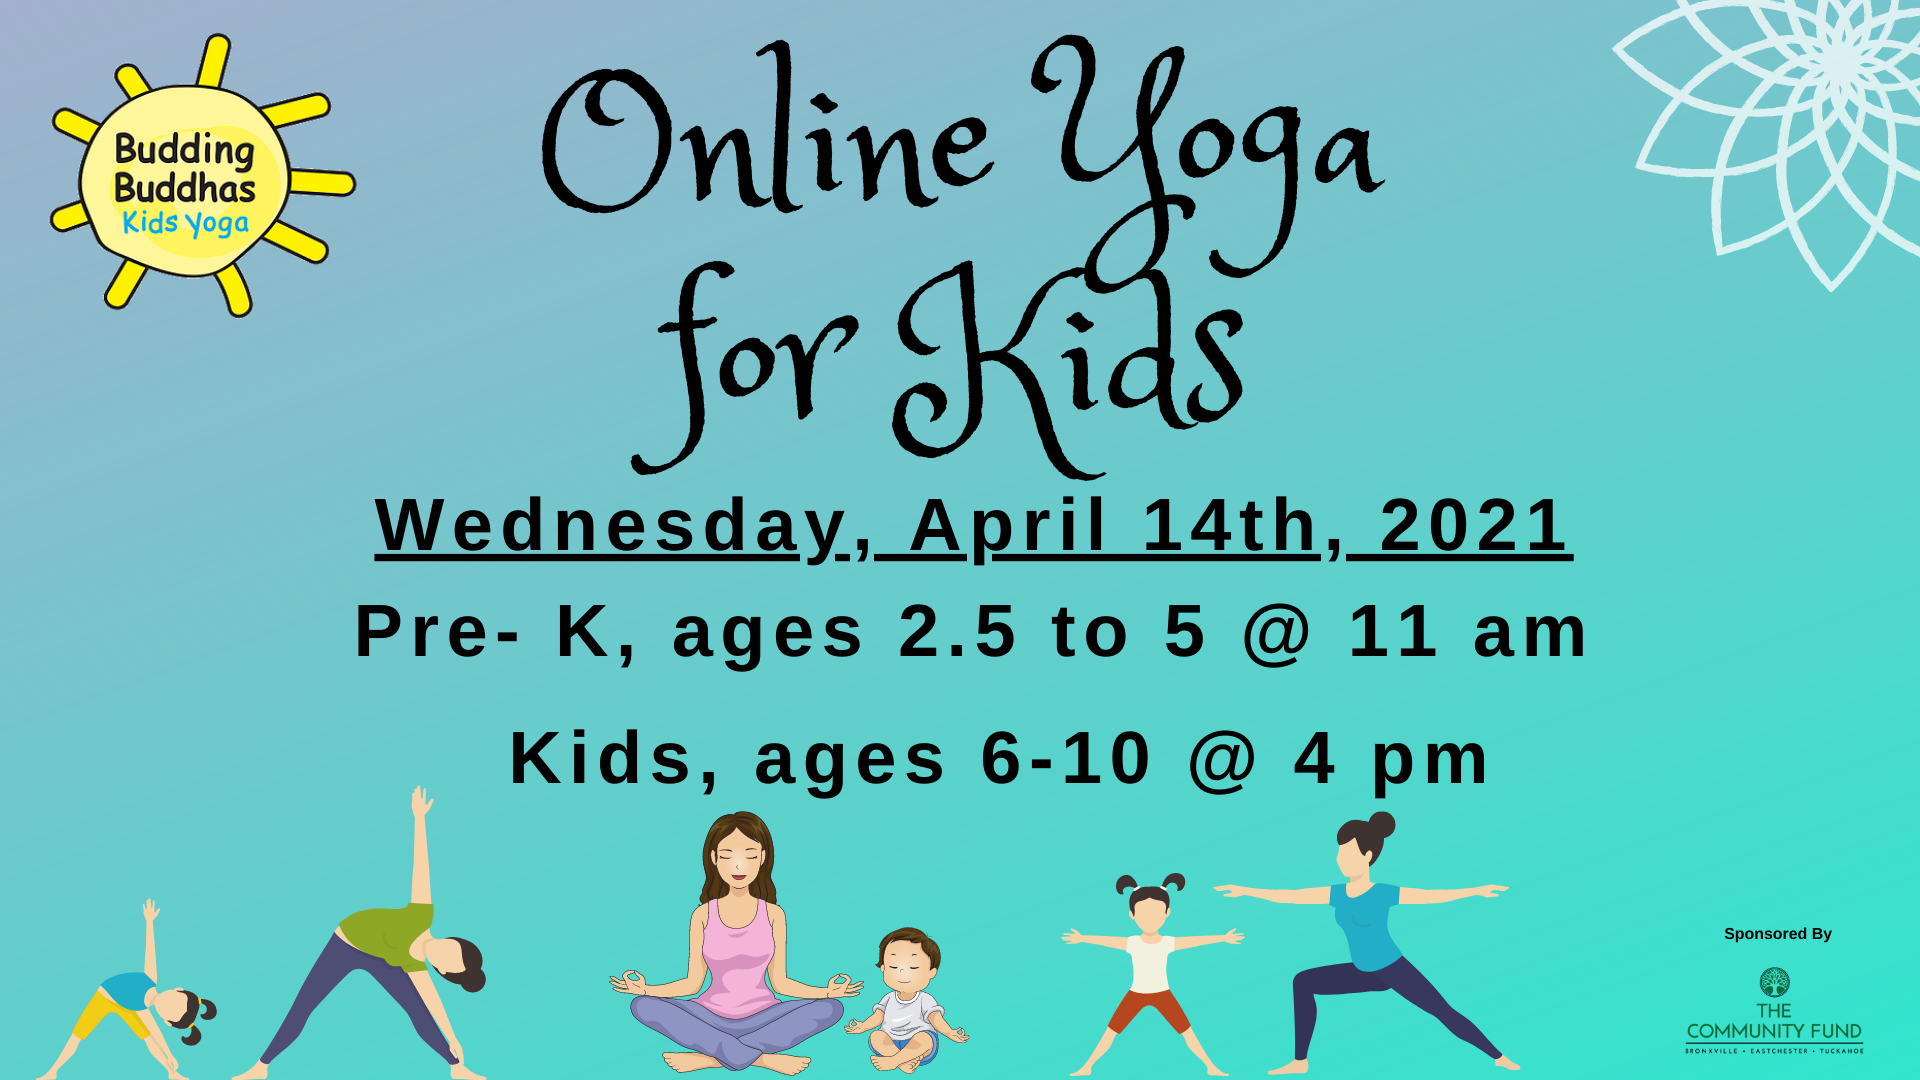 Online Kid's Yoga with Budding Buddhas, Ages 6-10 years